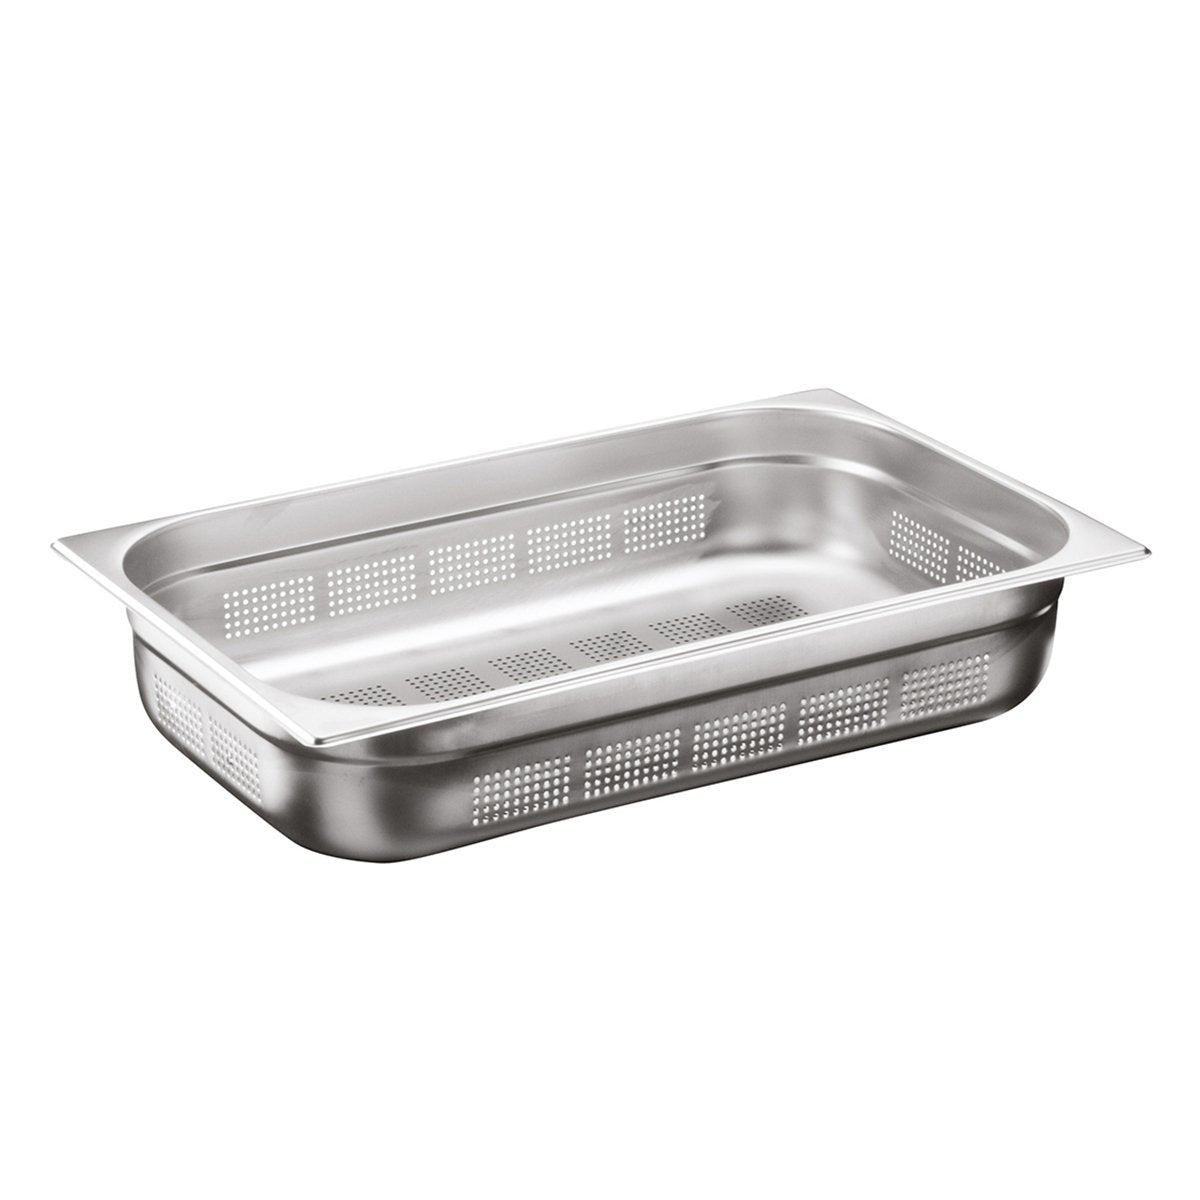 OZTI PERFORATED GASTRONORM CONTAINER - GN 1/1